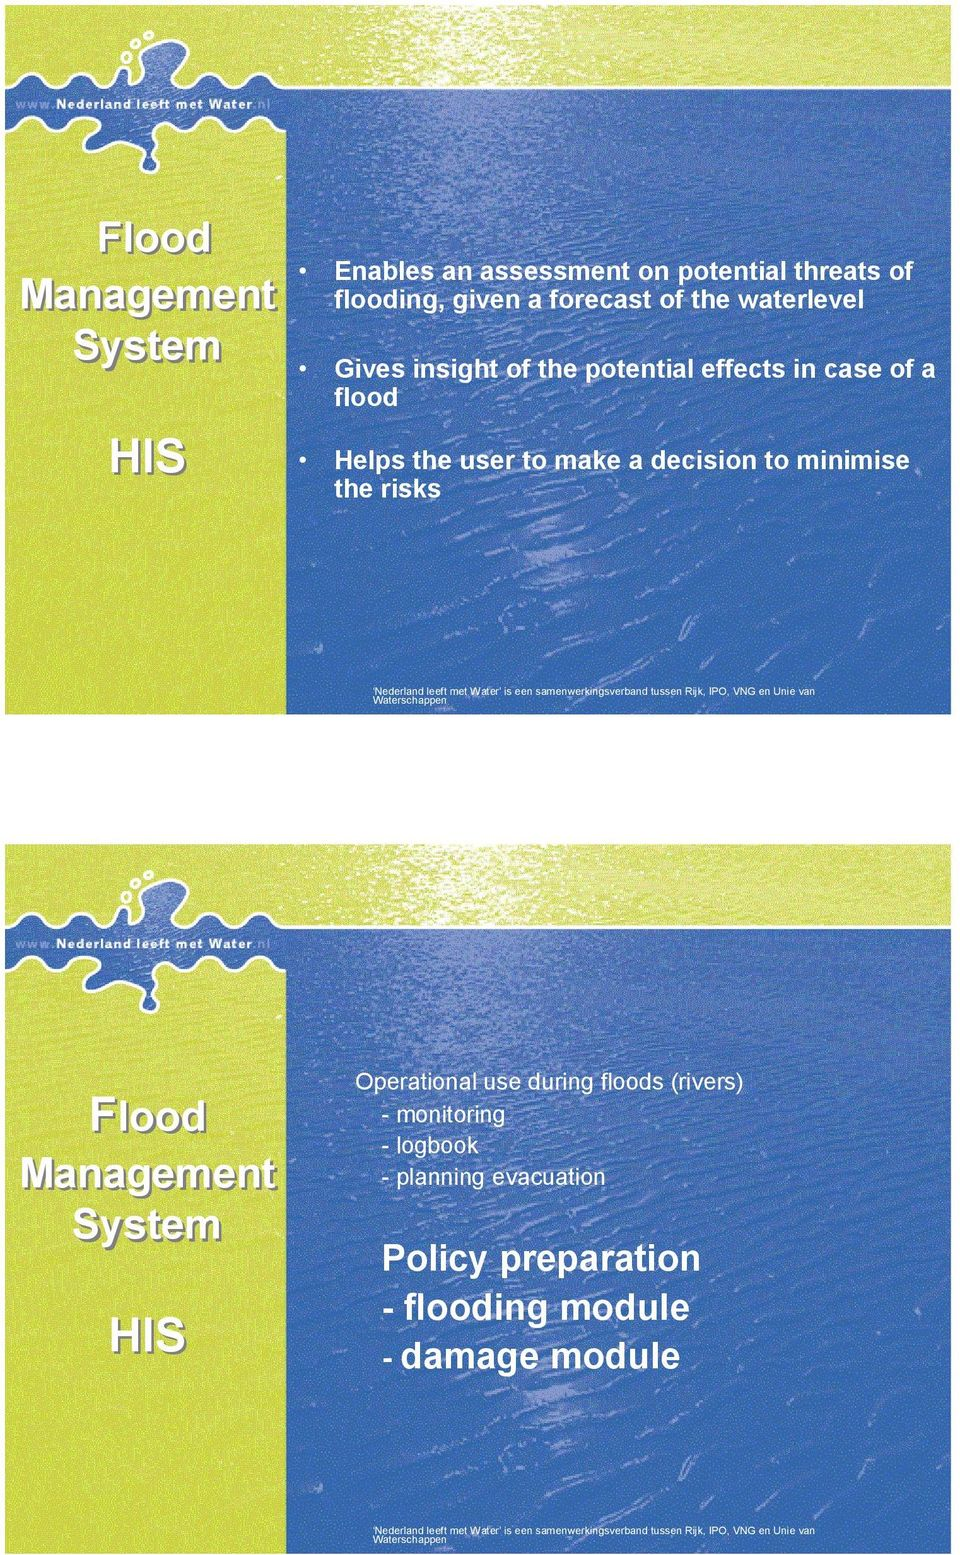 make a decision to minimise the risks Flood System Operational use during floods (rivers) -